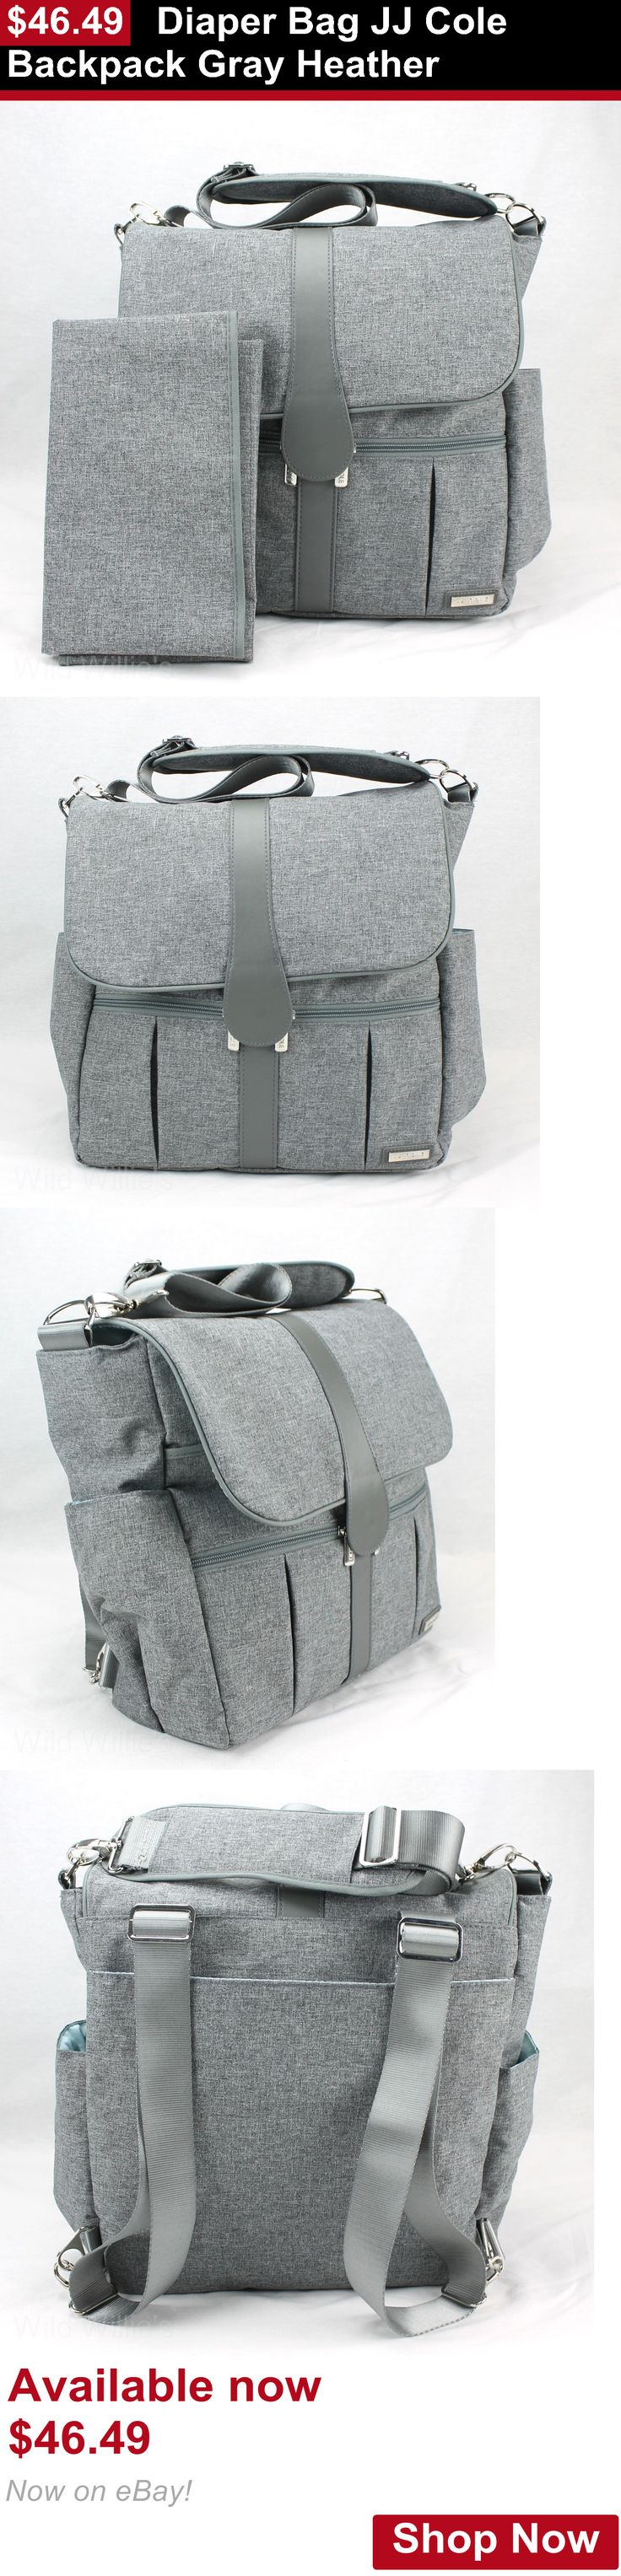 1000 ideas about baby diaper bags on pinterest baby changing bags baby jogger and diaper bags. Black Bedroom Furniture Sets. Home Design Ideas